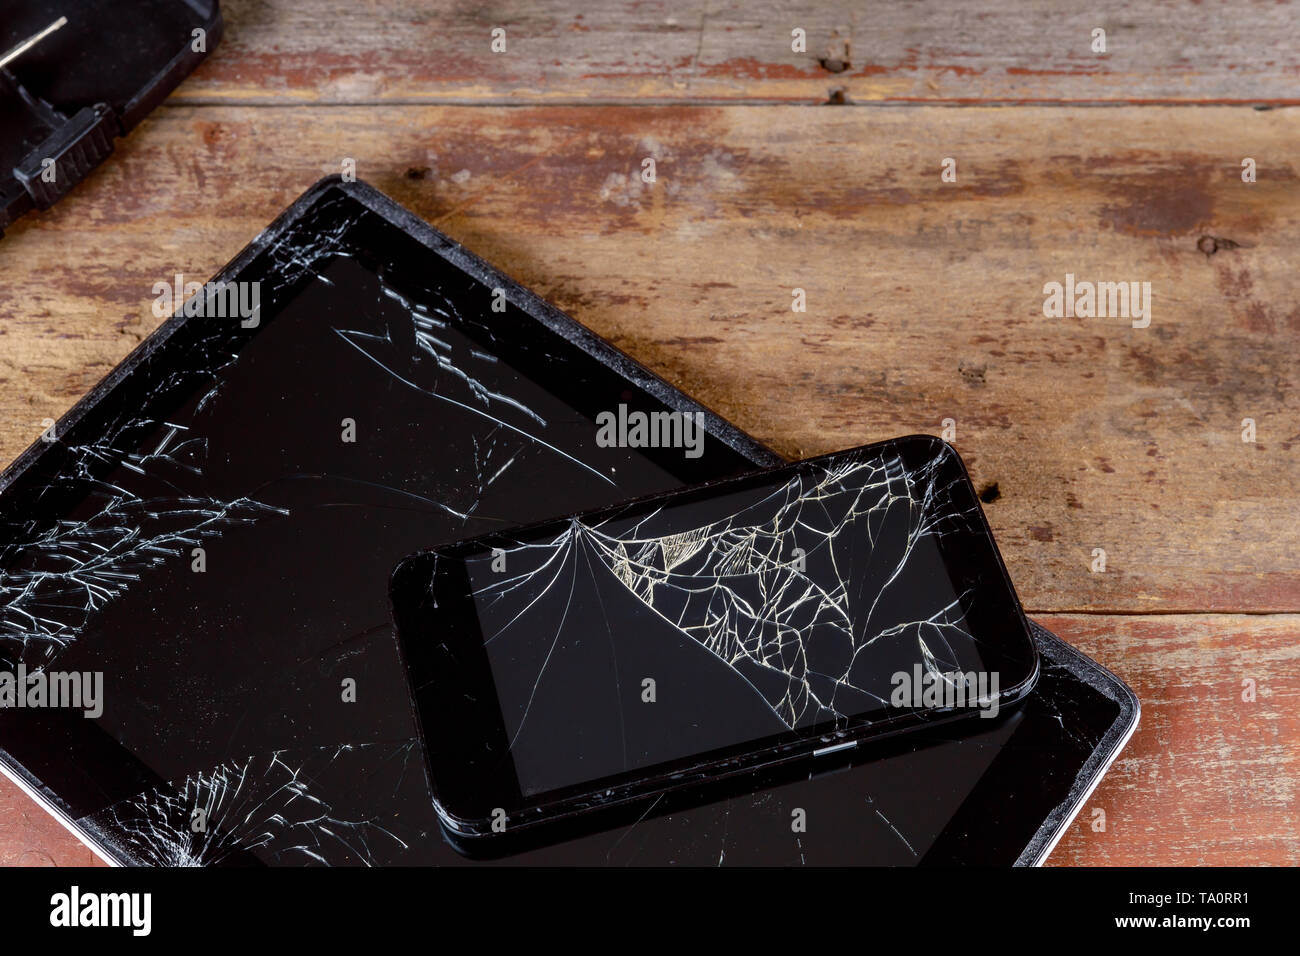 Broken glass screen on the touch screen electronic device smart phone and tablet - Stock Image